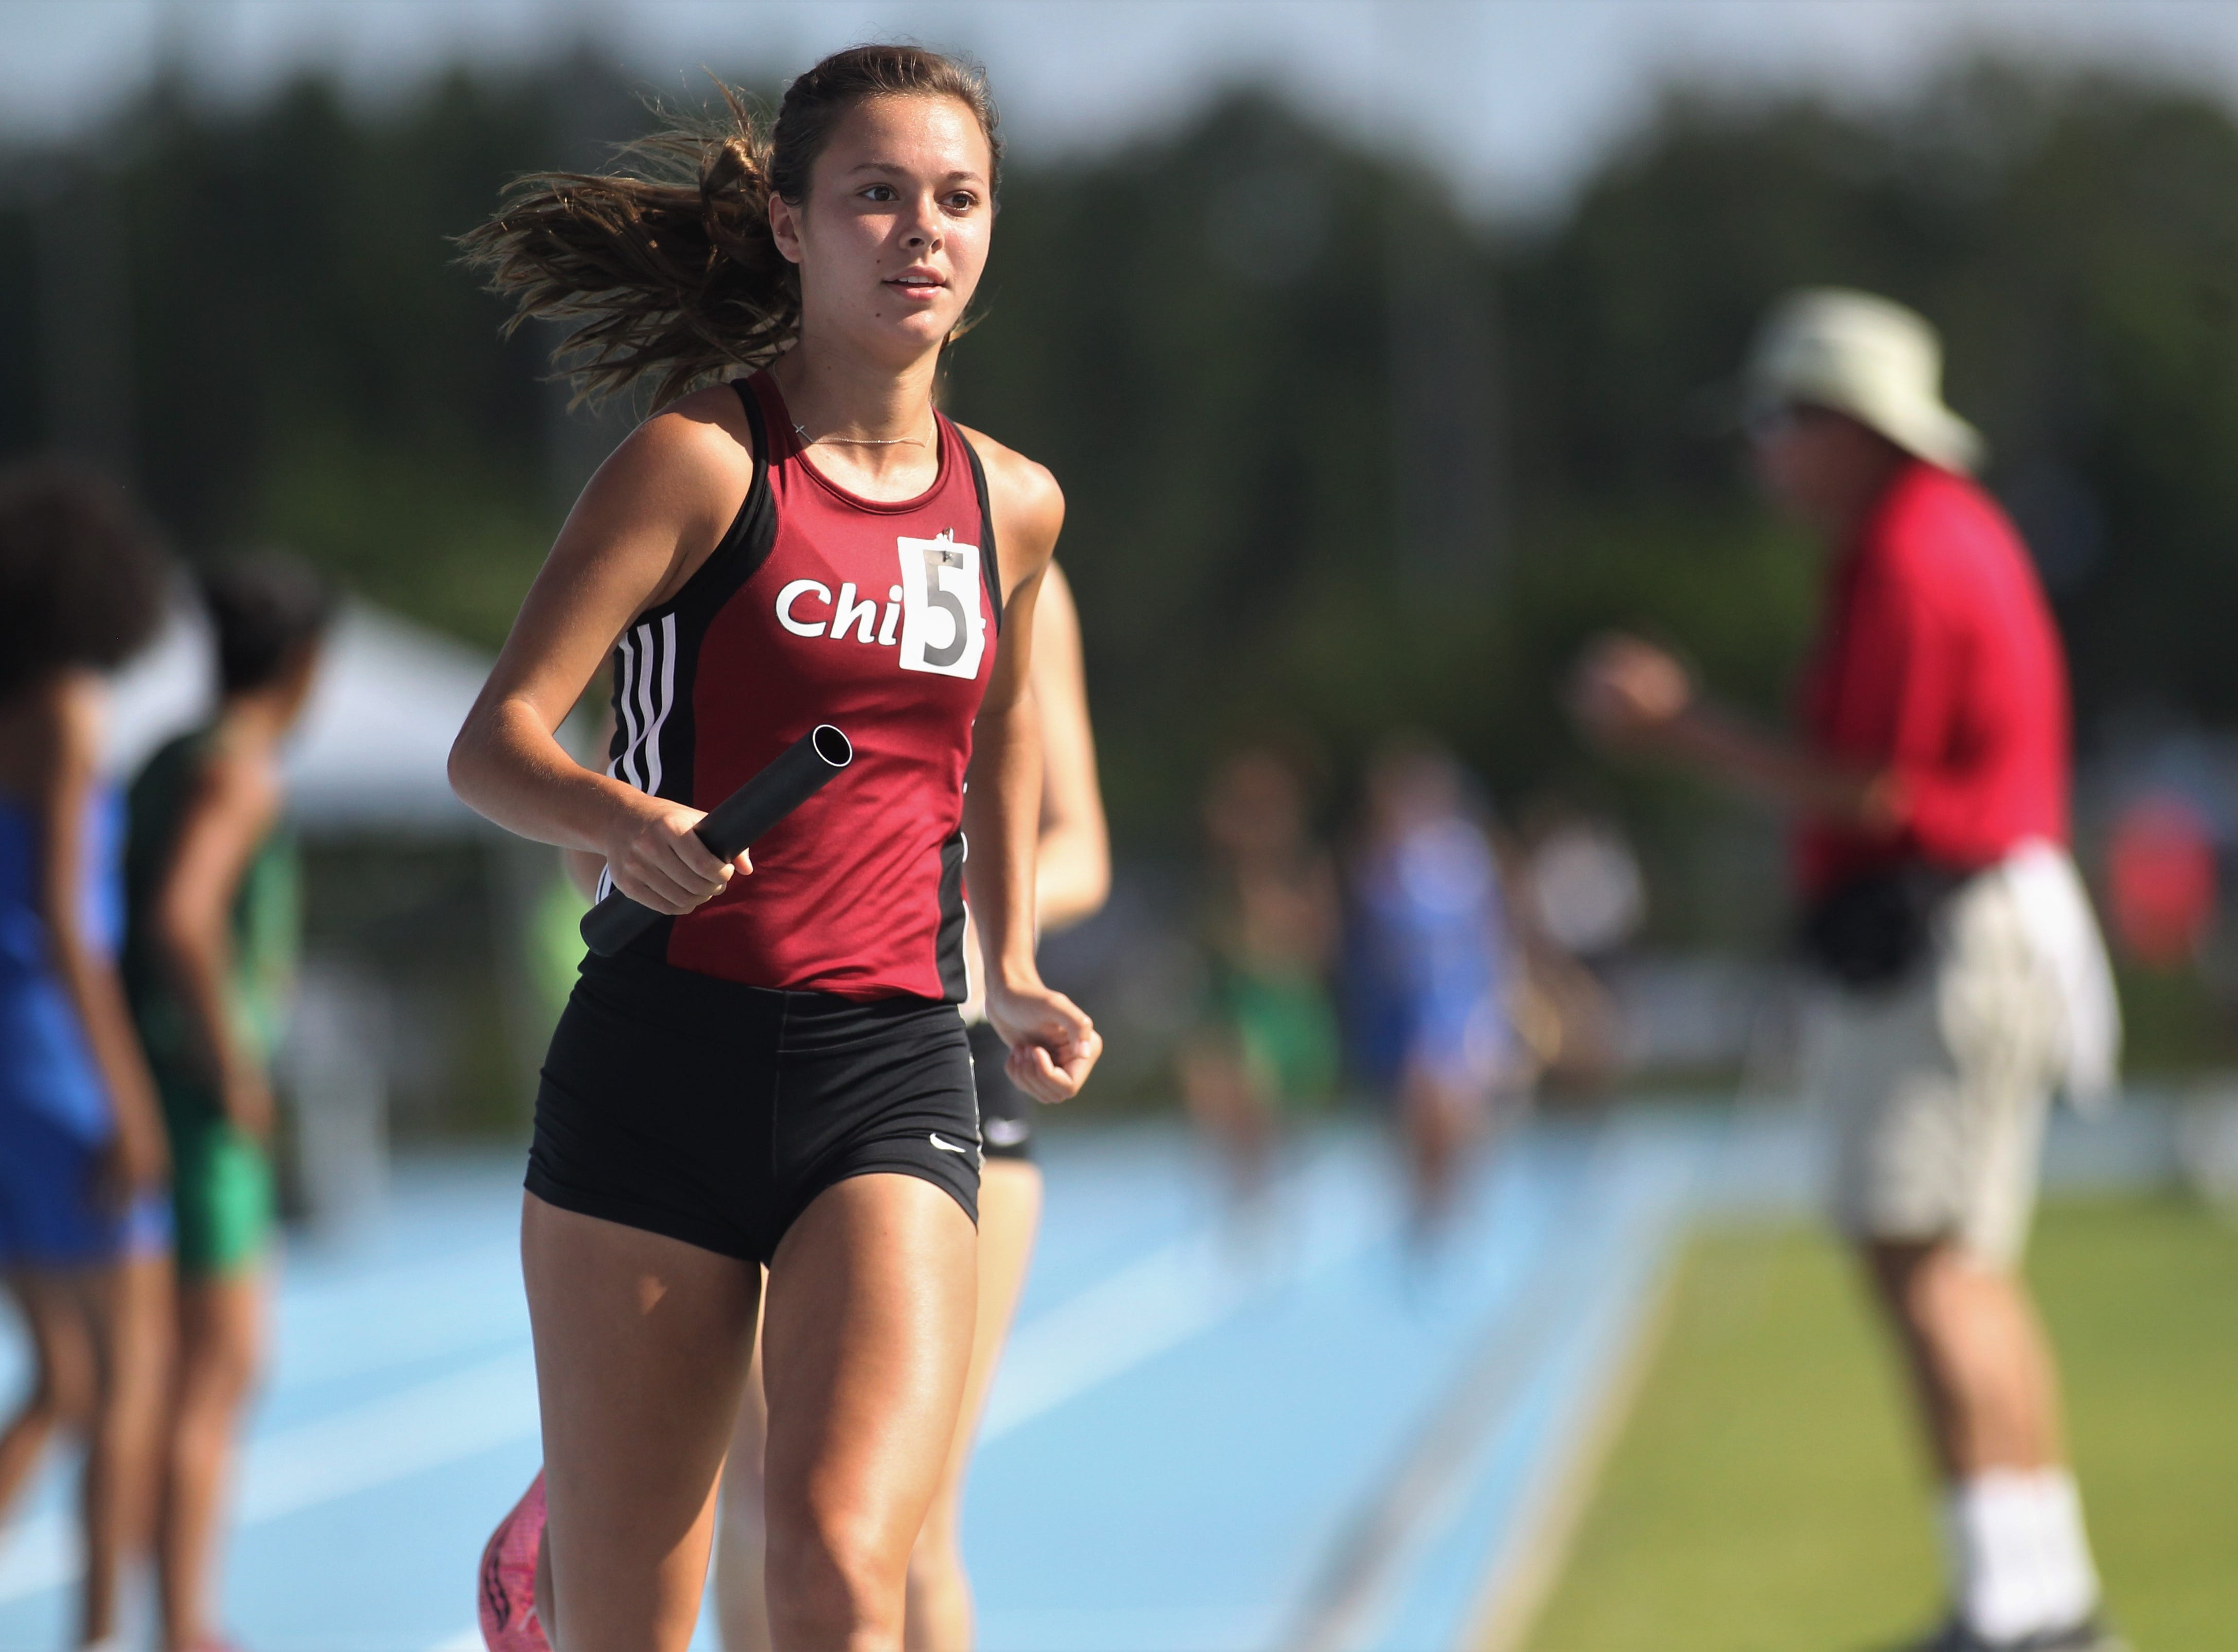 Chiles senior Olivia Miller runs the anchor leg as Chiles' girls 4x800 relay captured gold in Florida's fourth-best time ever during the FHSAA Track & Field State Championships at UNF's Hodges Stadium in Jacksonville on May 4, 2019.